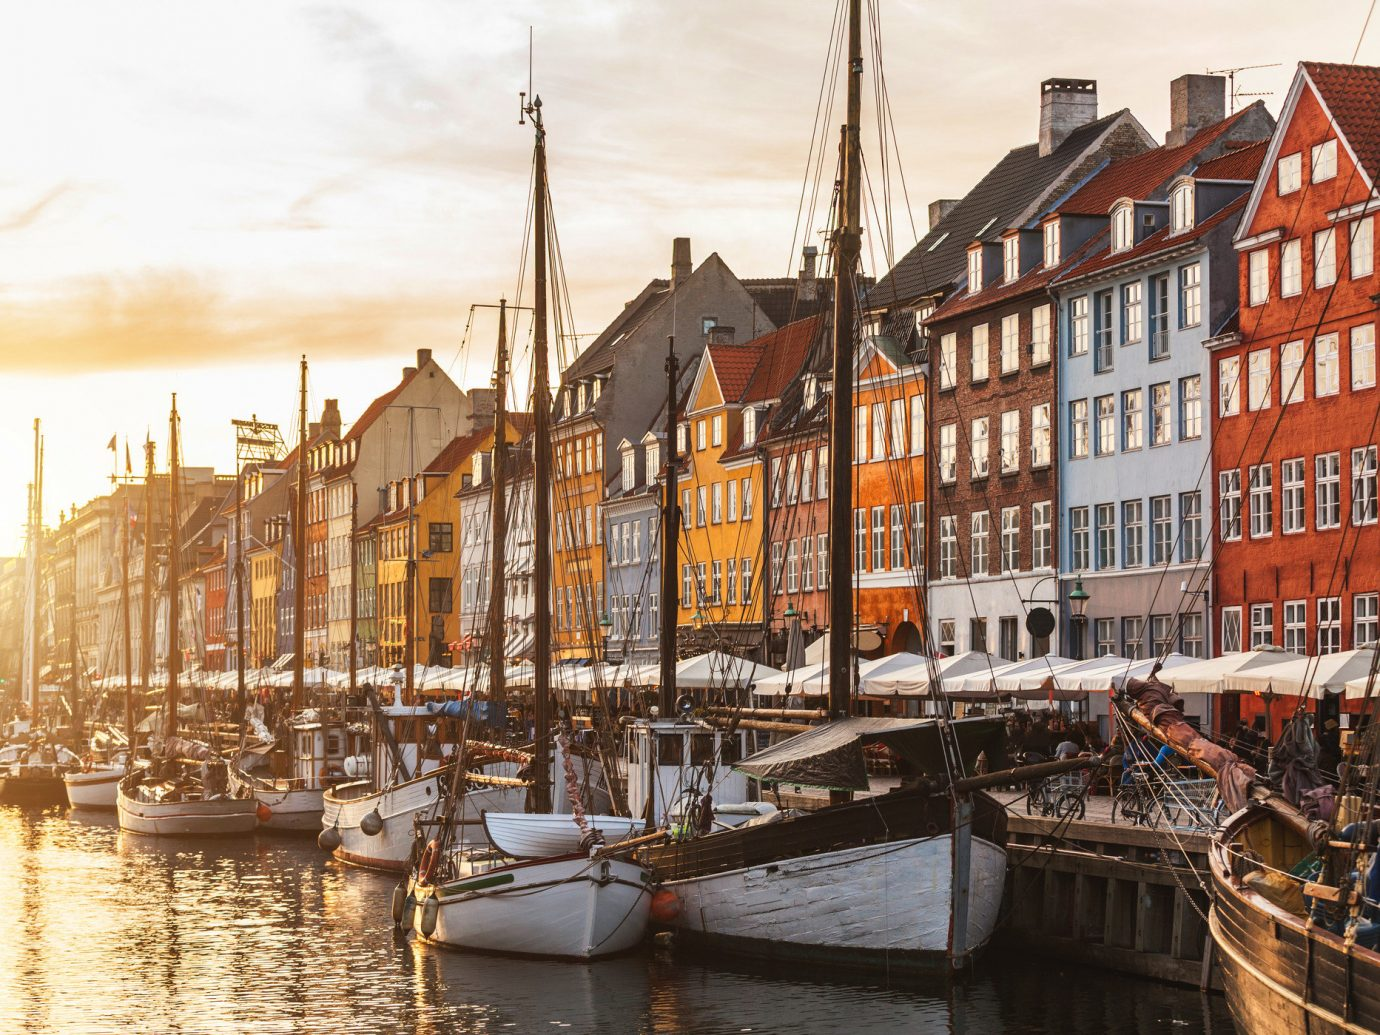 Offbeat Style + Design Travel Tips Trip Ideas sky outdoor Canal scene landform body of water Town waterway Harbor Boat cityscape vehicle River channel evening dock reflection several